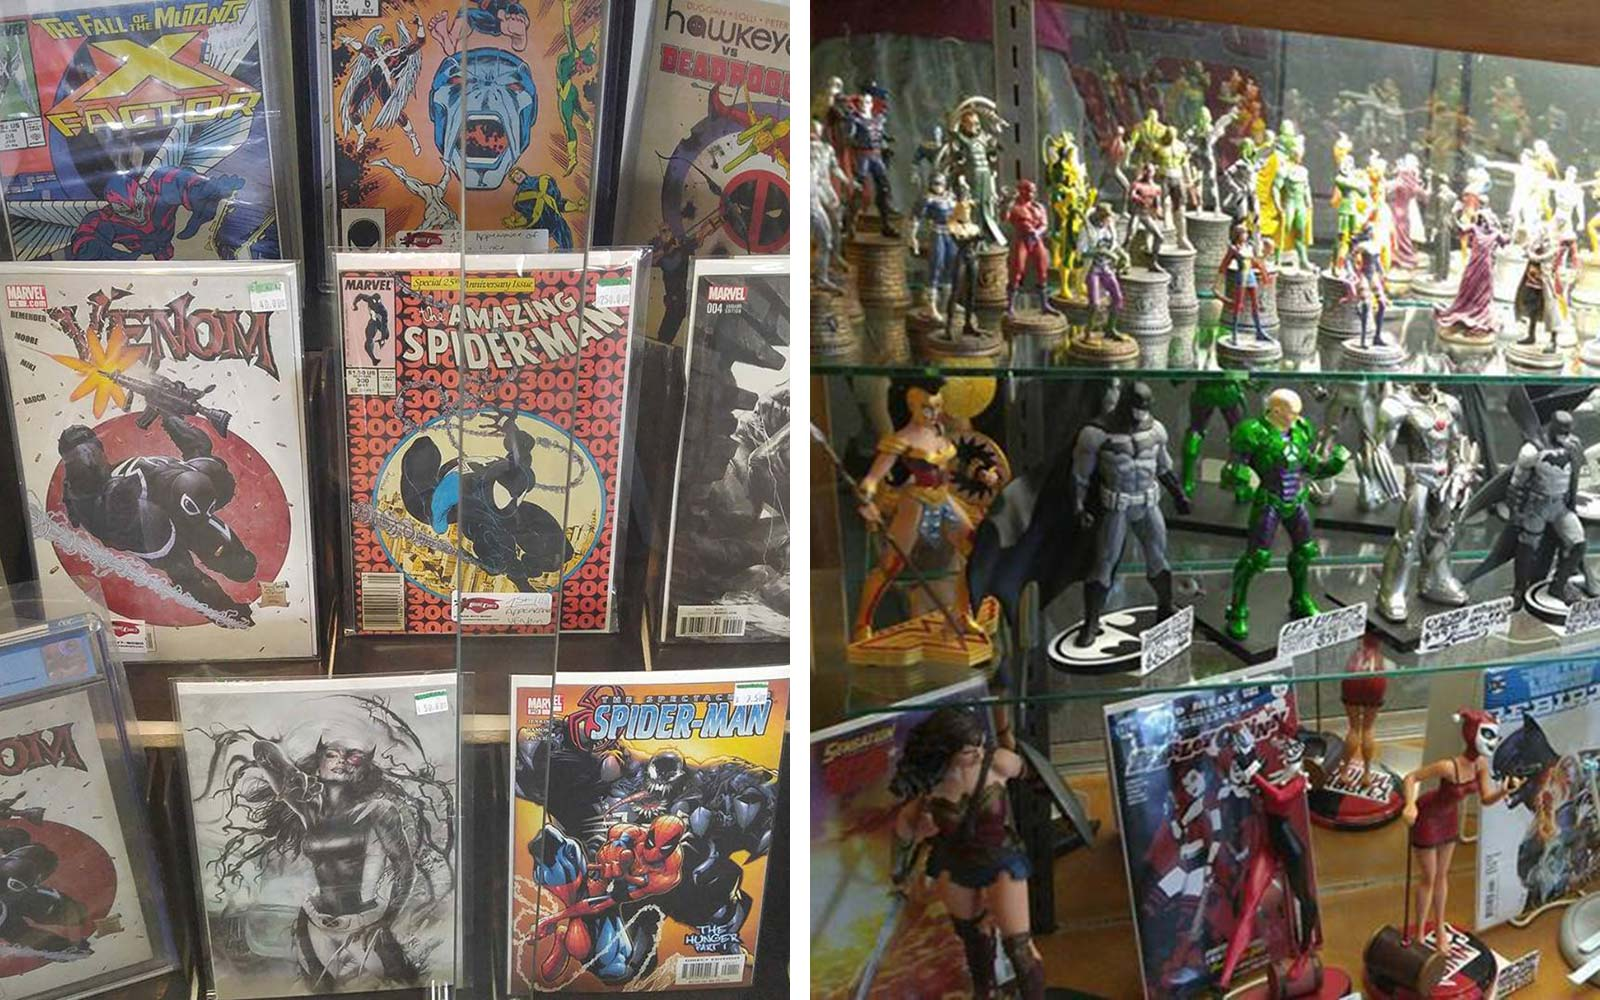 Drawn to Comics Glendale Arizona